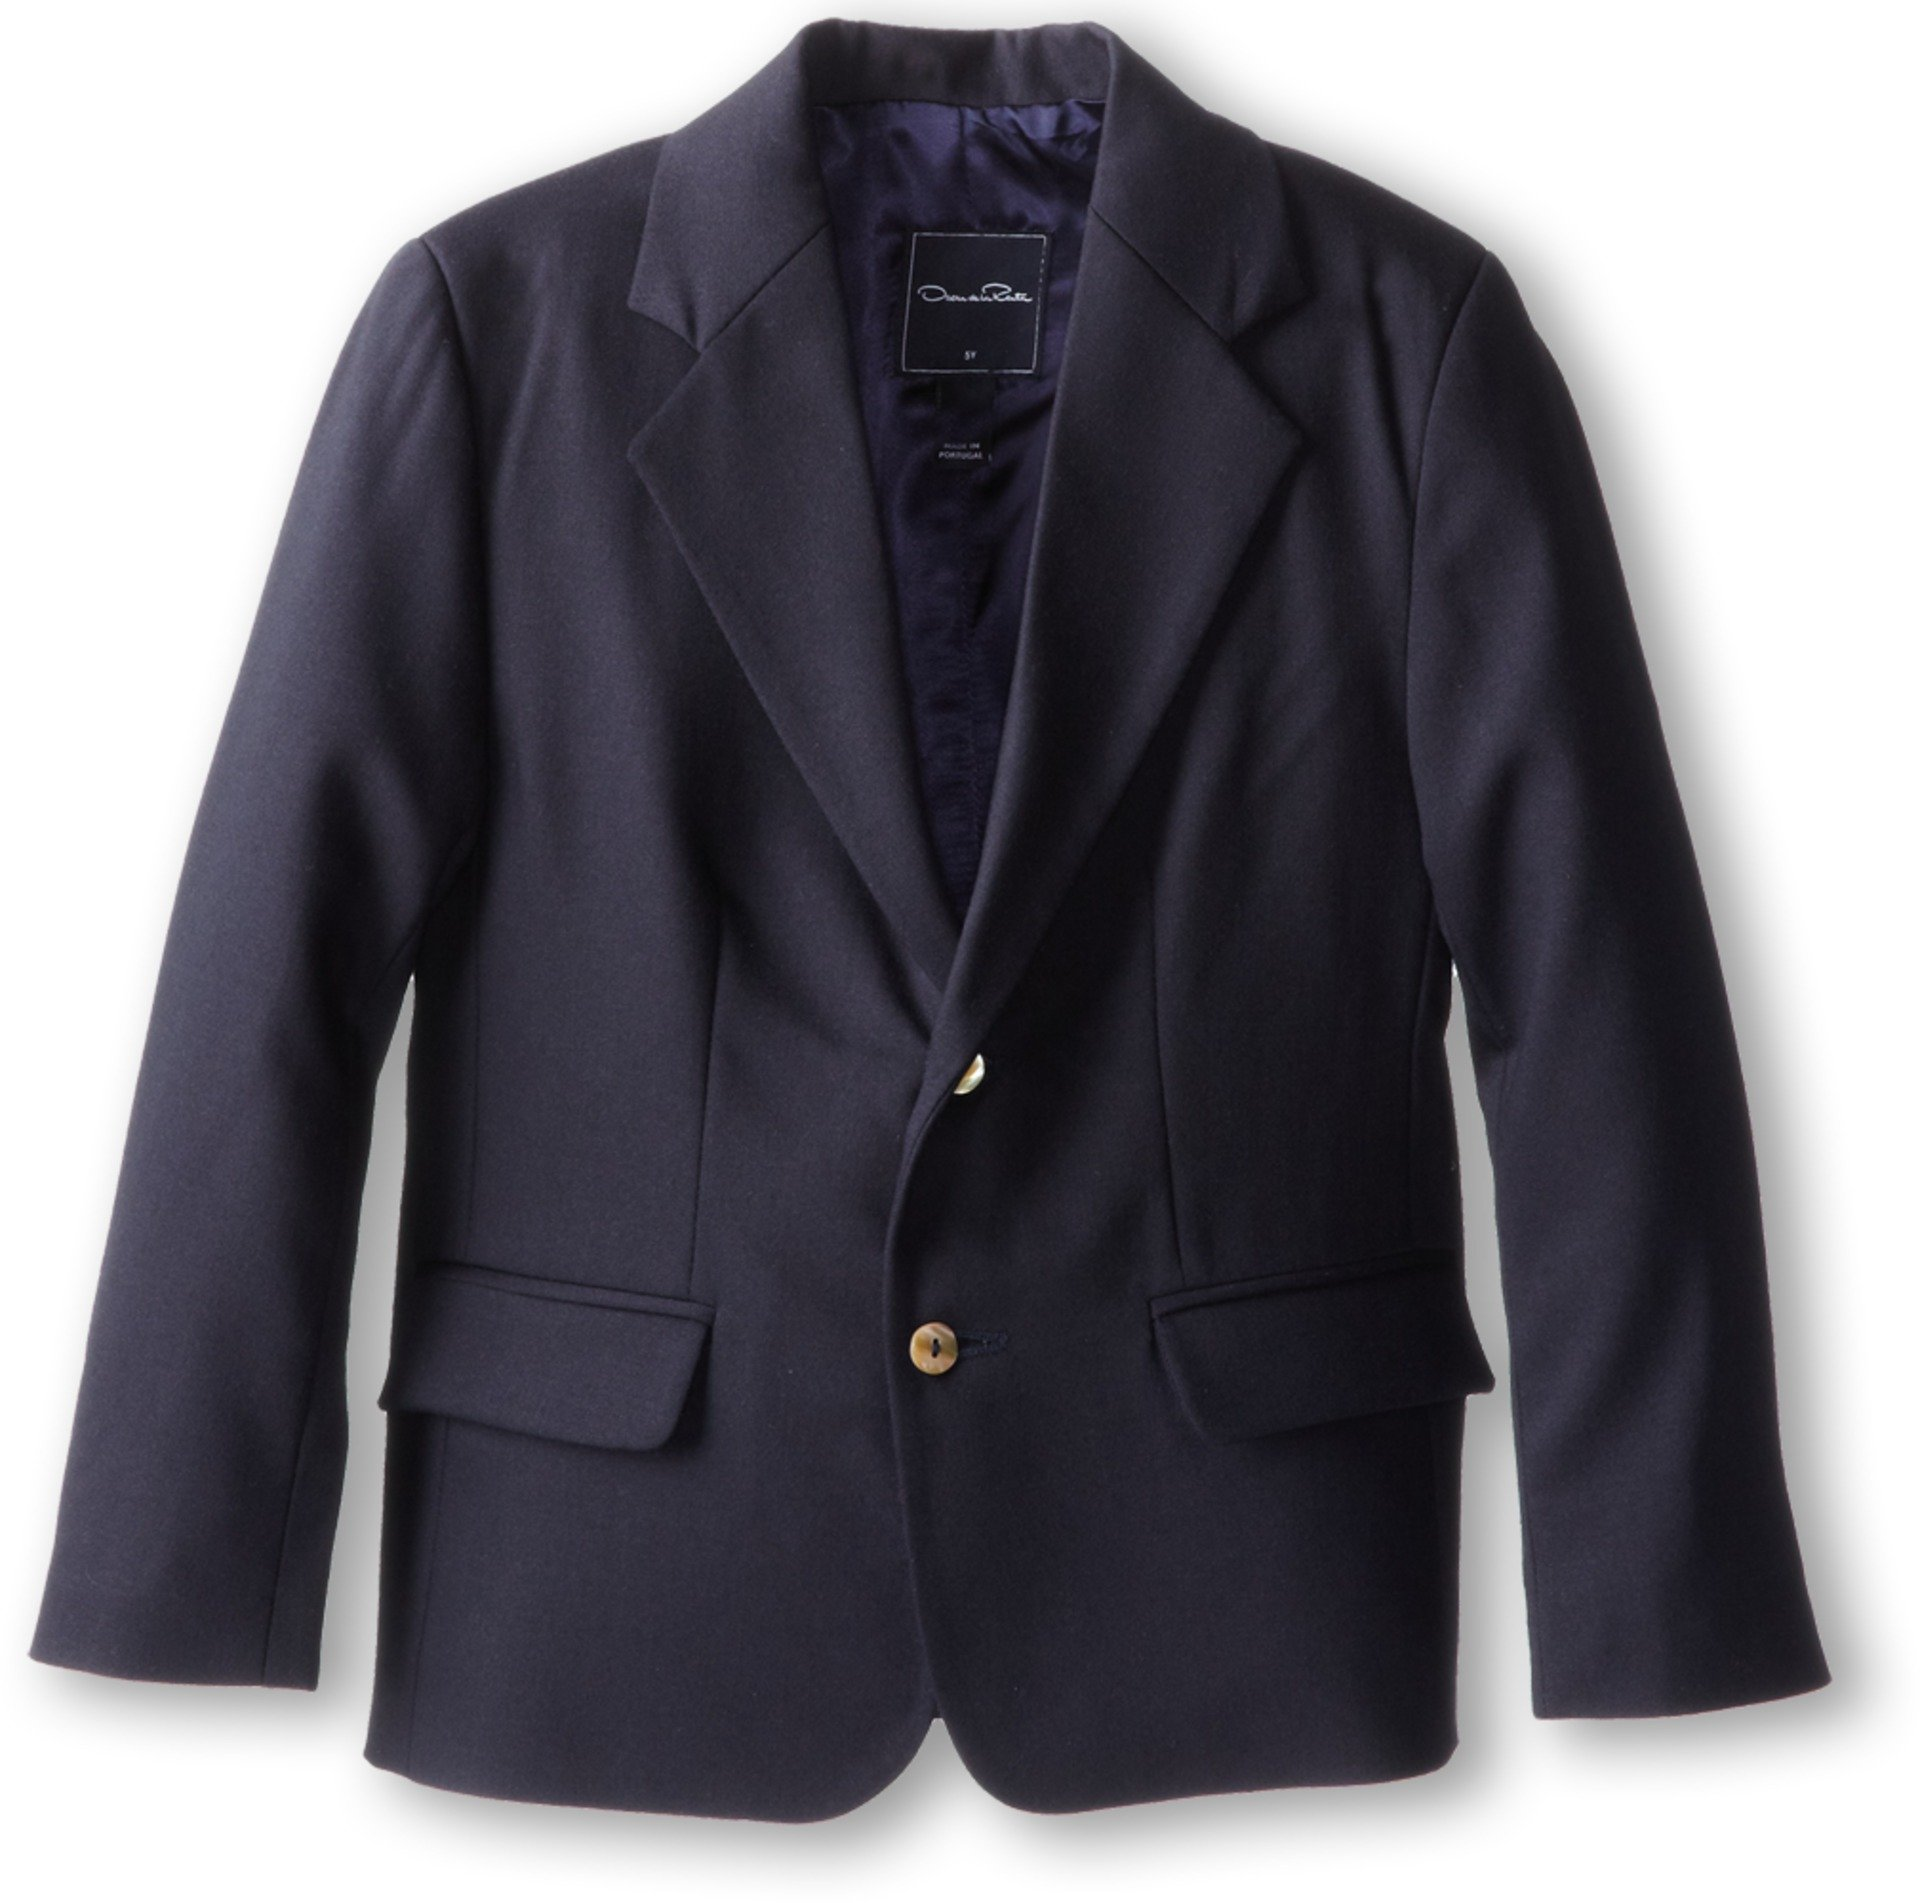 Oscar de la Renta Childrenswear Boy's Wool Blazer (Toddler/Little Kids/Big Kids) Navy Jacket 3 (Toddler)